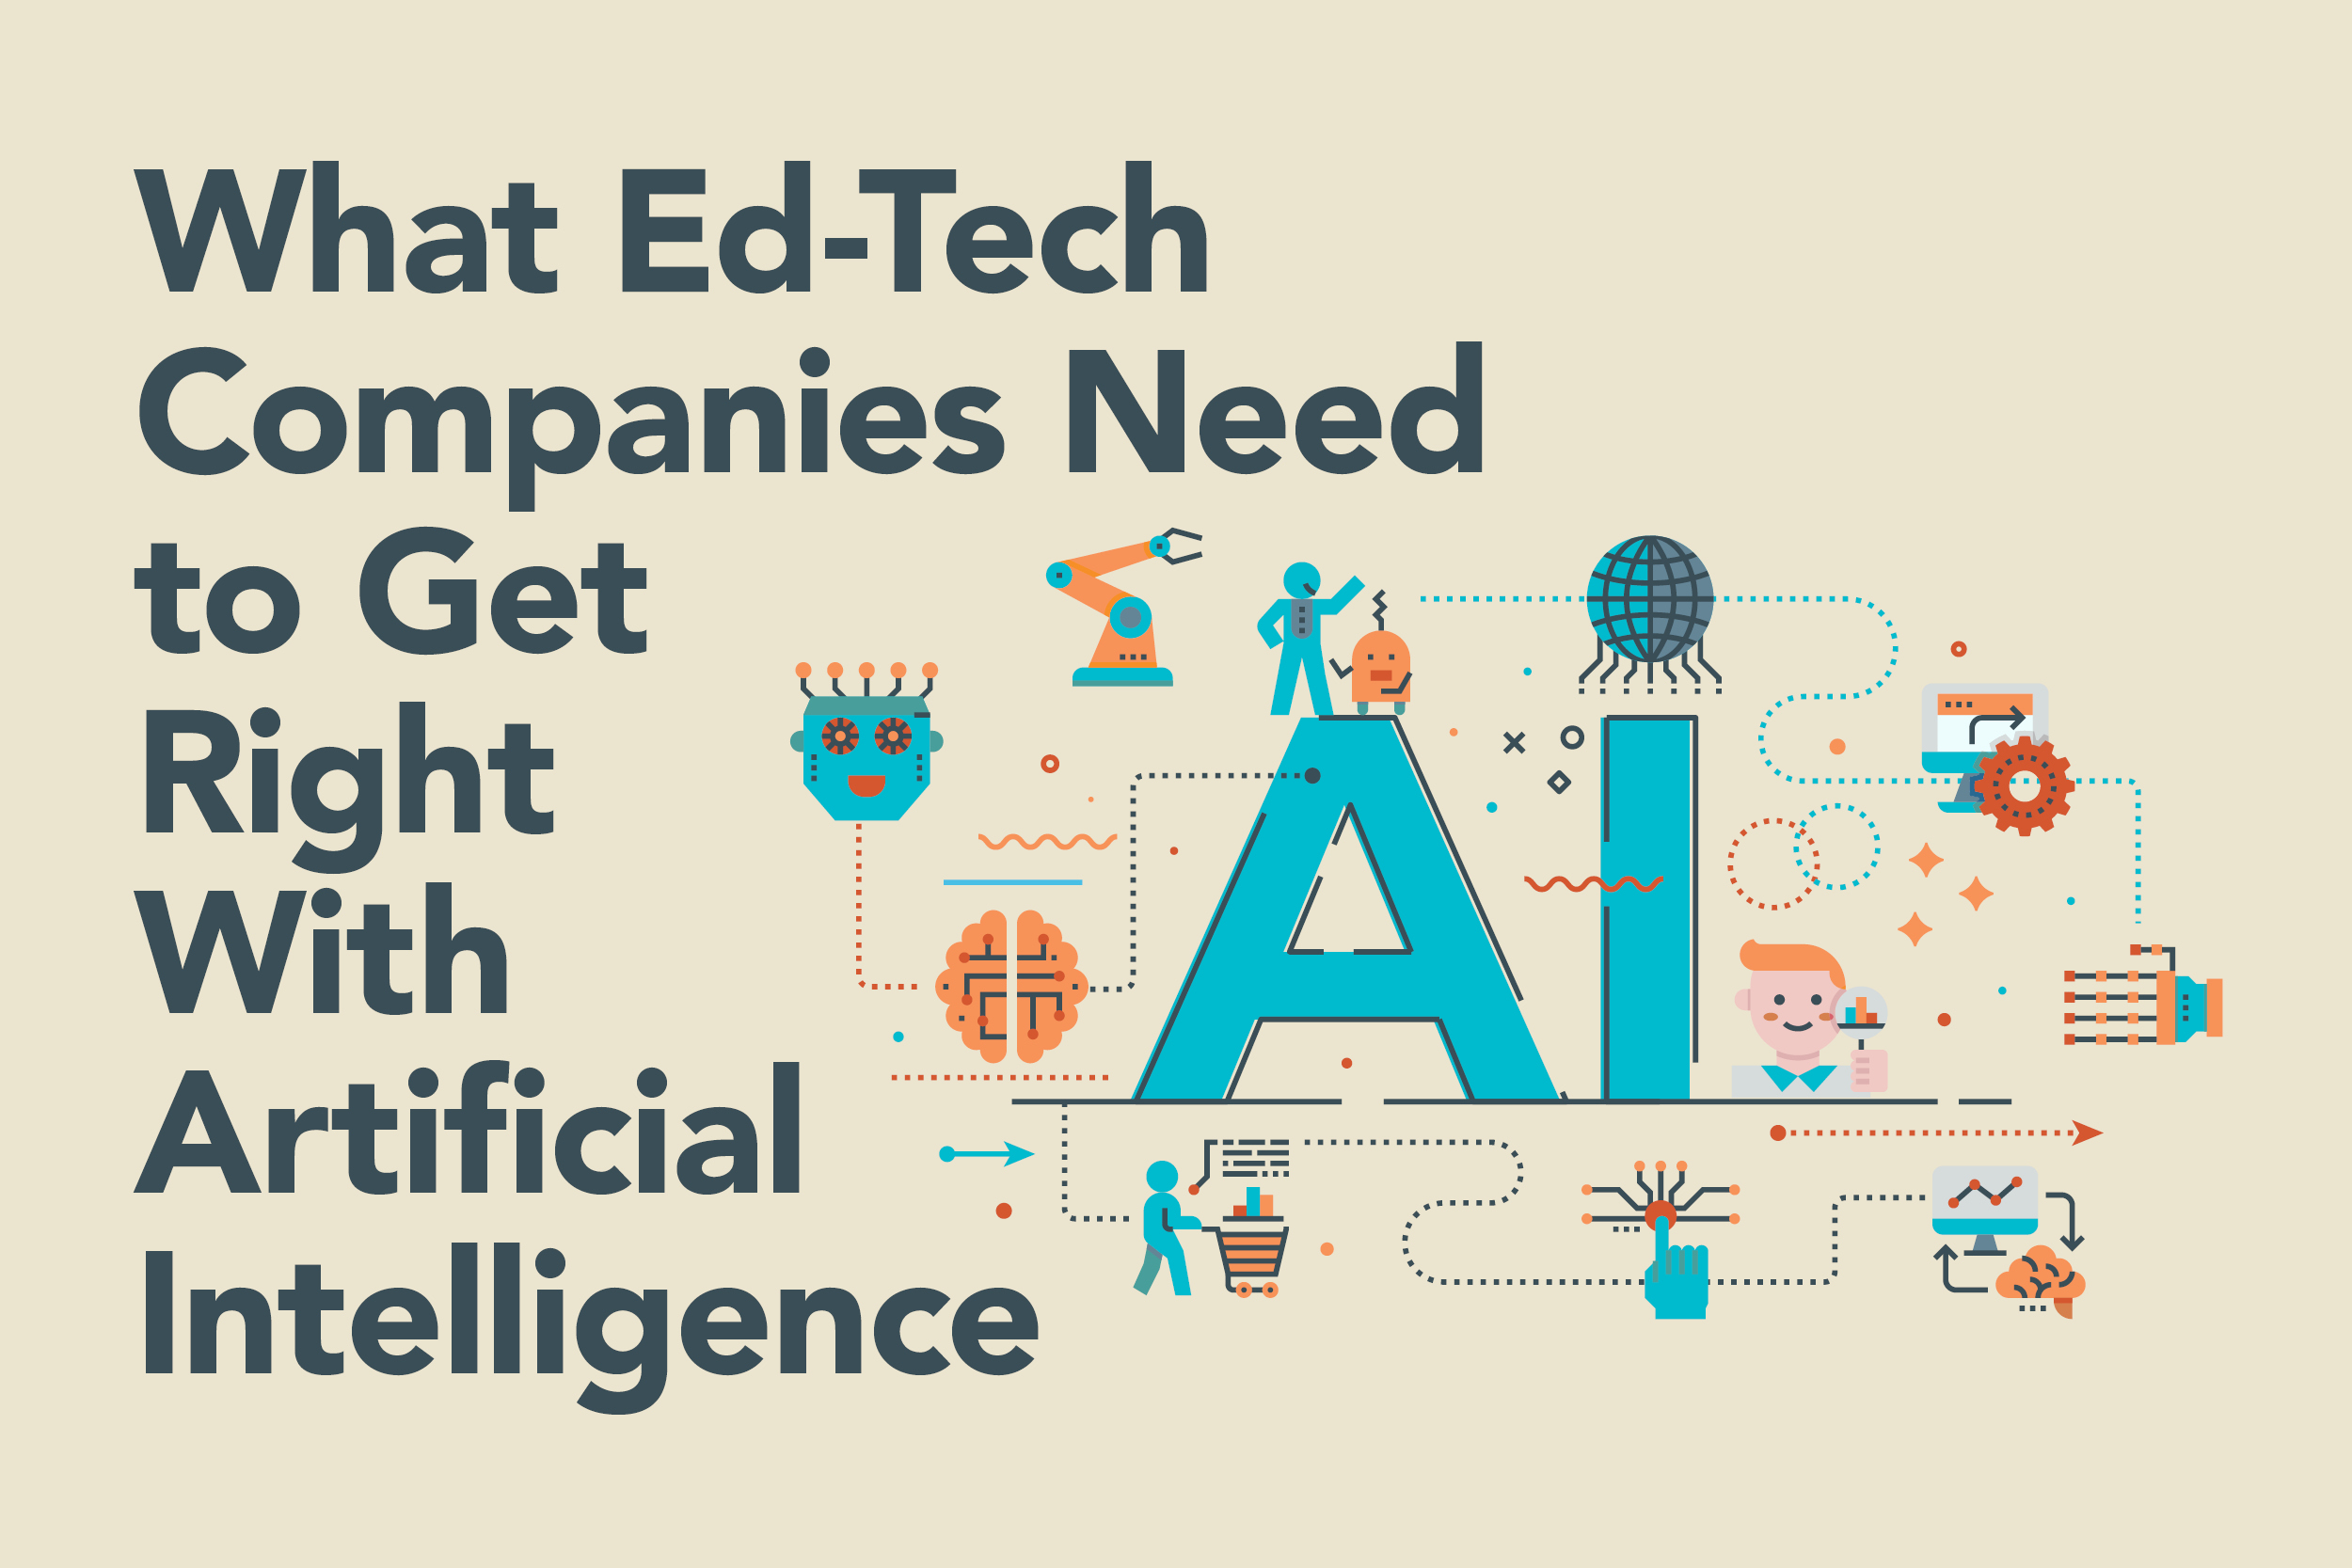 What Ed-Tech Companies Need to Get Right With Artificial Intelligence